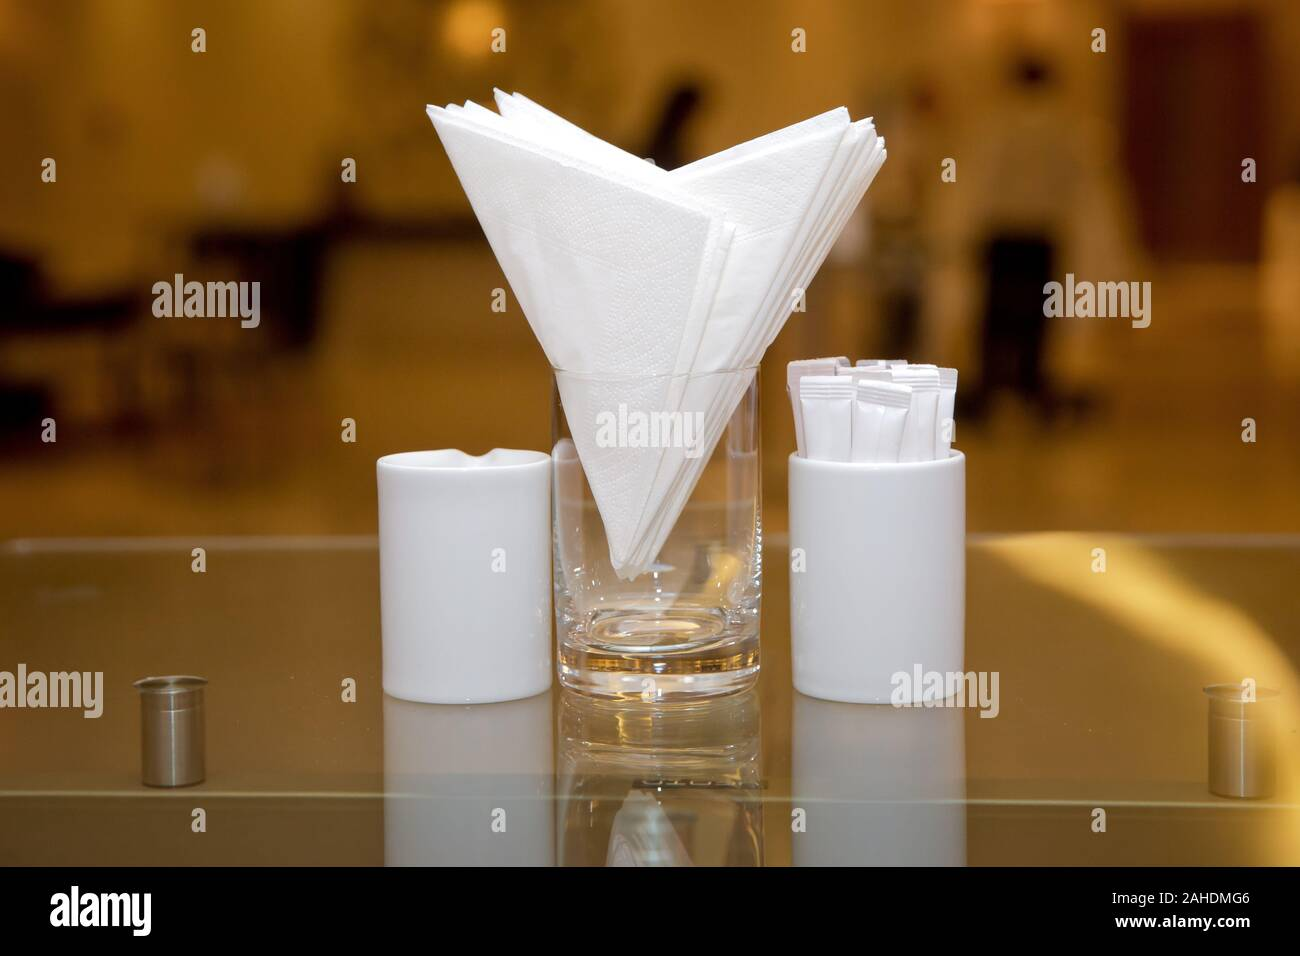 White Napkins In A Metal Napkin Holder Spices Salt And Pepper On A Woodeglass Table Panoramic View Toothpick A Table In A Cafe Or Restaurant Stock Photo Alamy